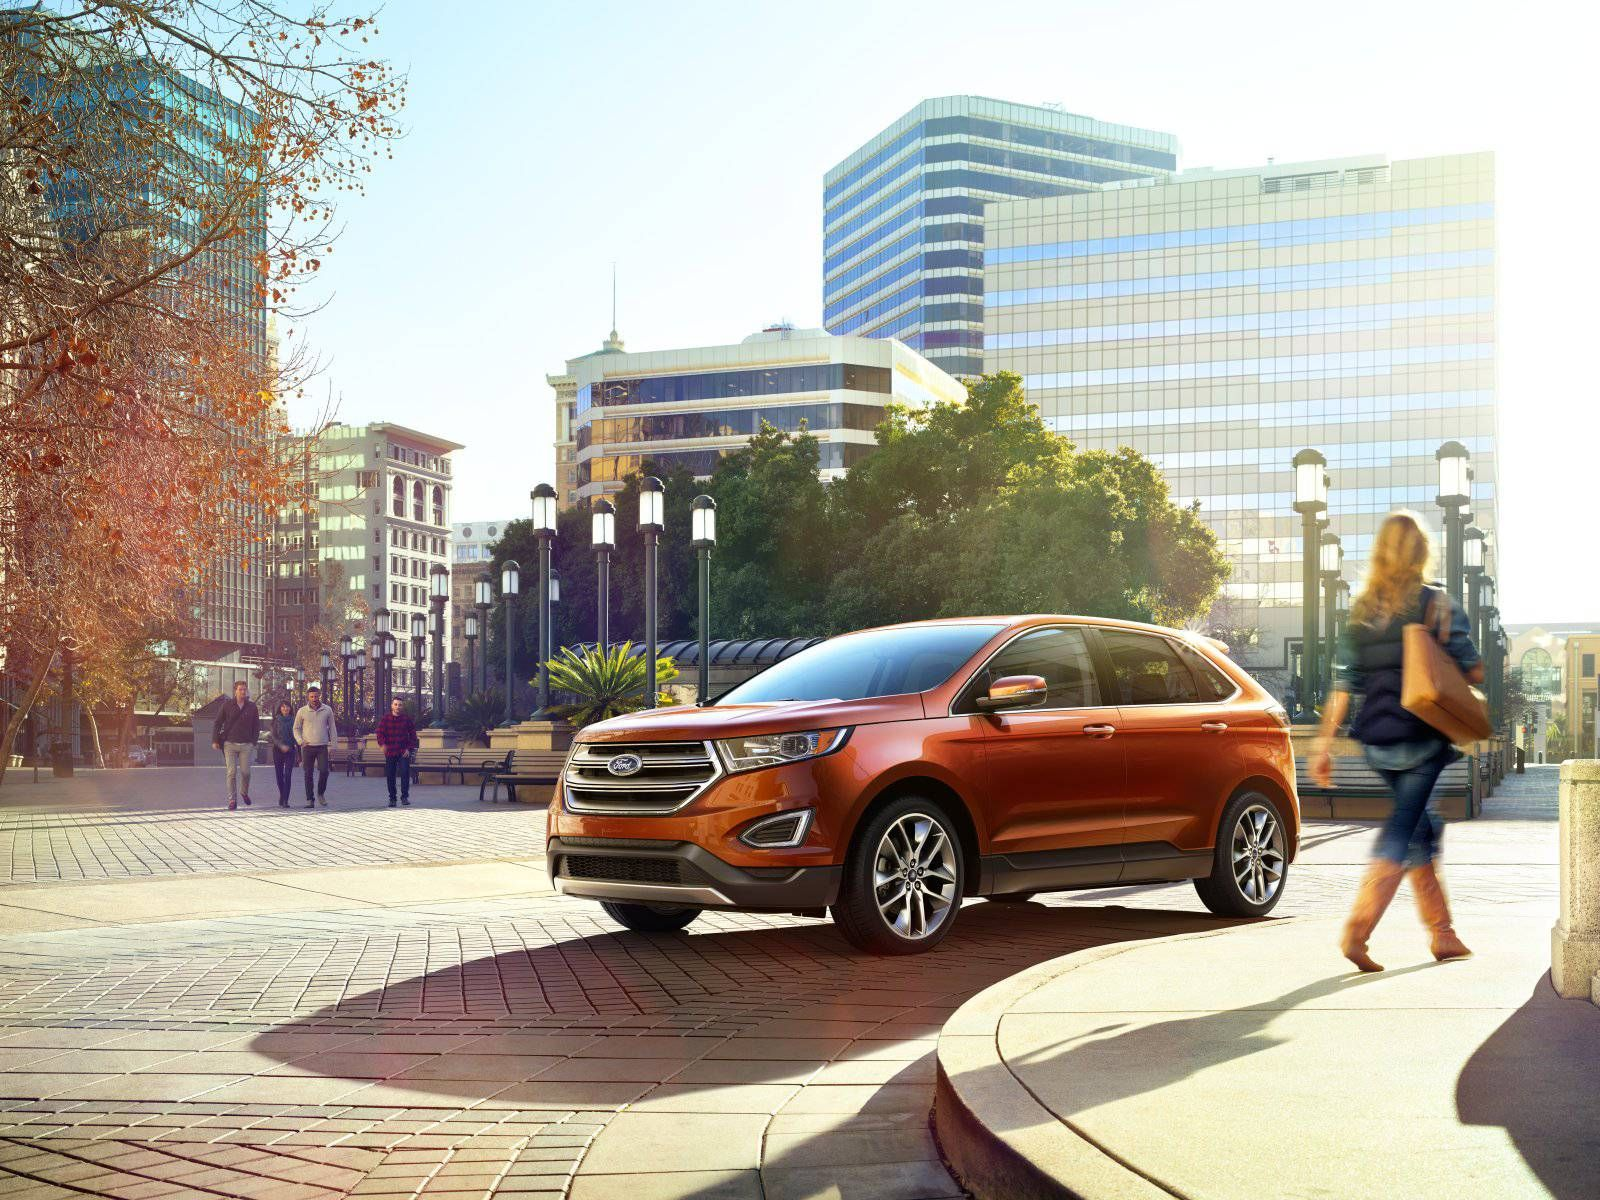 2015 Ford Edge Edge (With images) Ford edge, Chevrolet